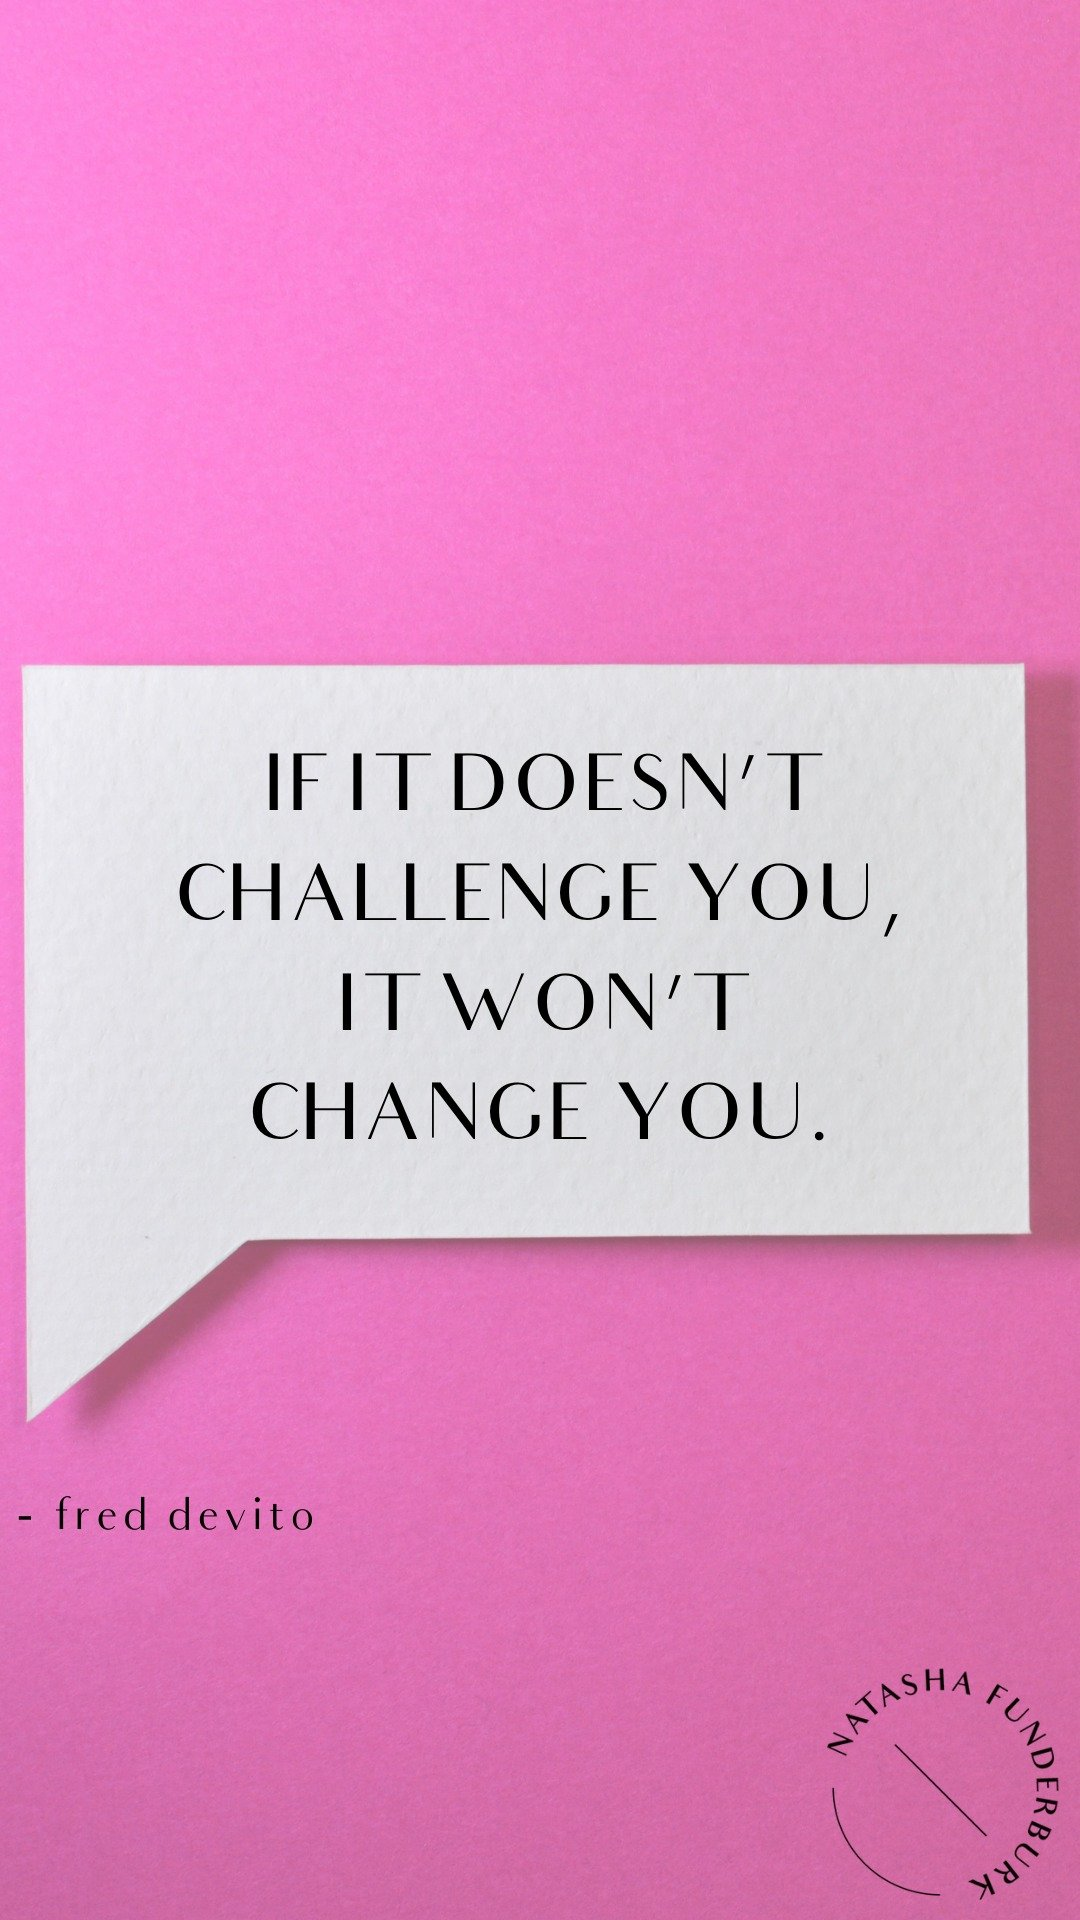 if it doesn't challenge you it won't change you